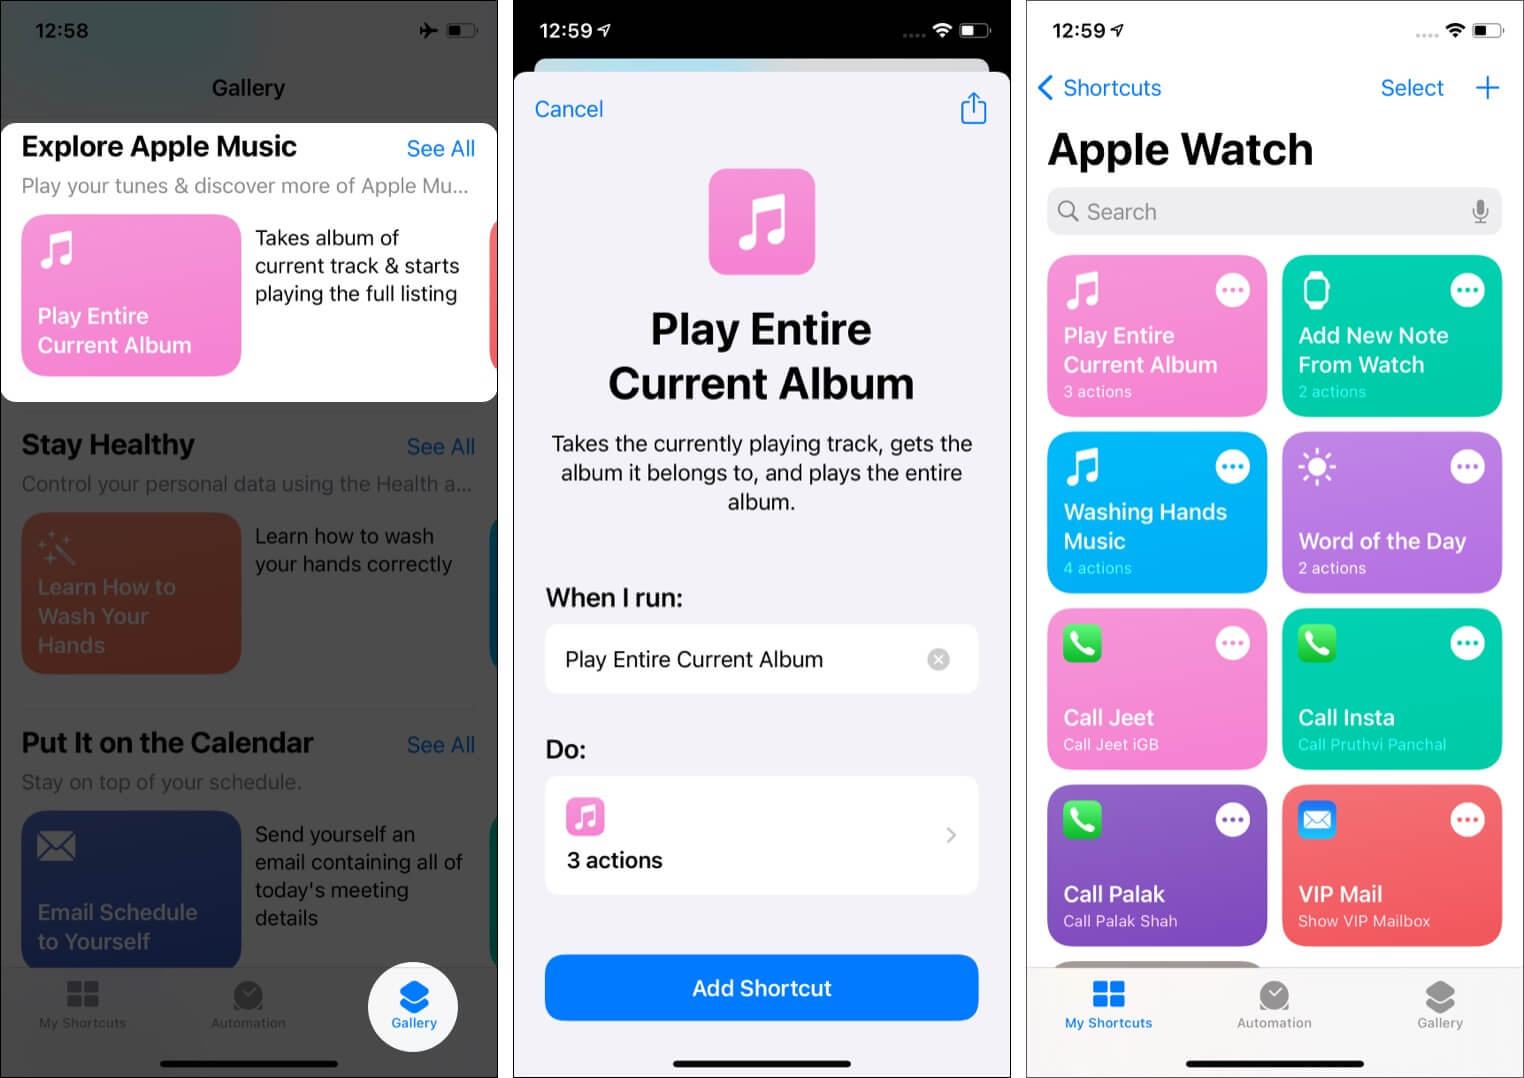 How to add shortcuts to Apple Watch